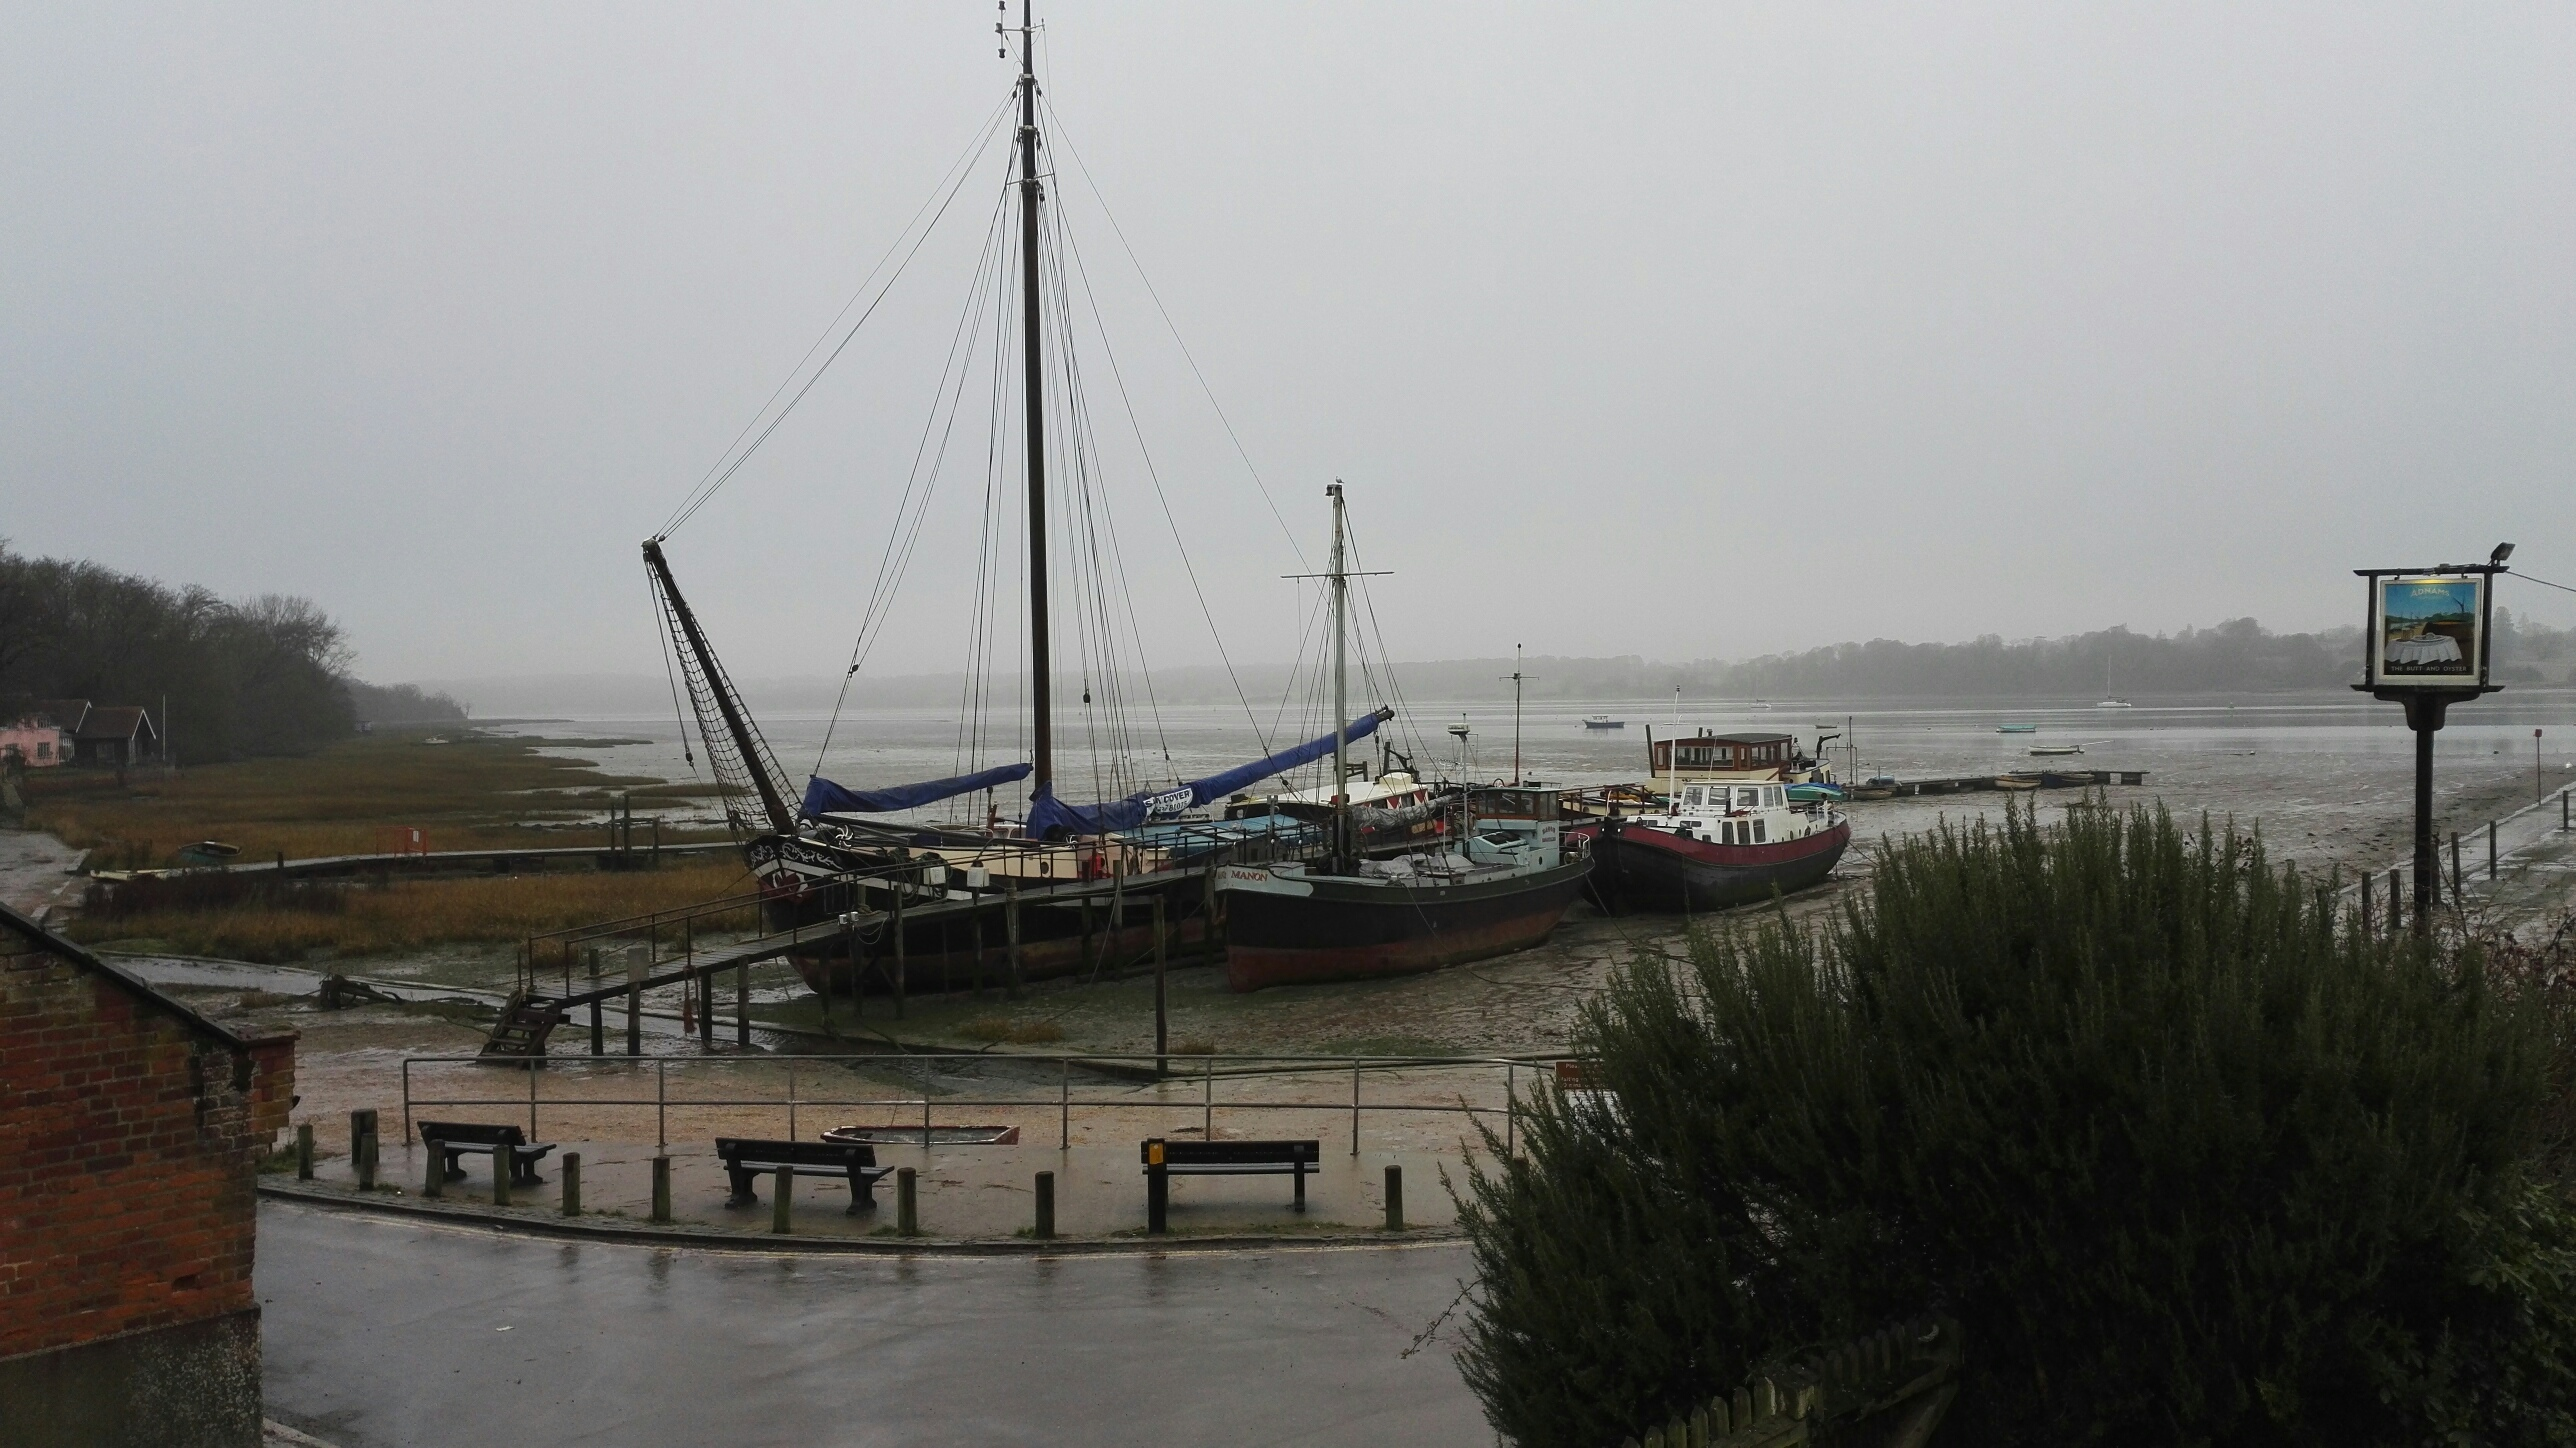 Boat, Barges, Oysters, Pub, Food, Suffolk